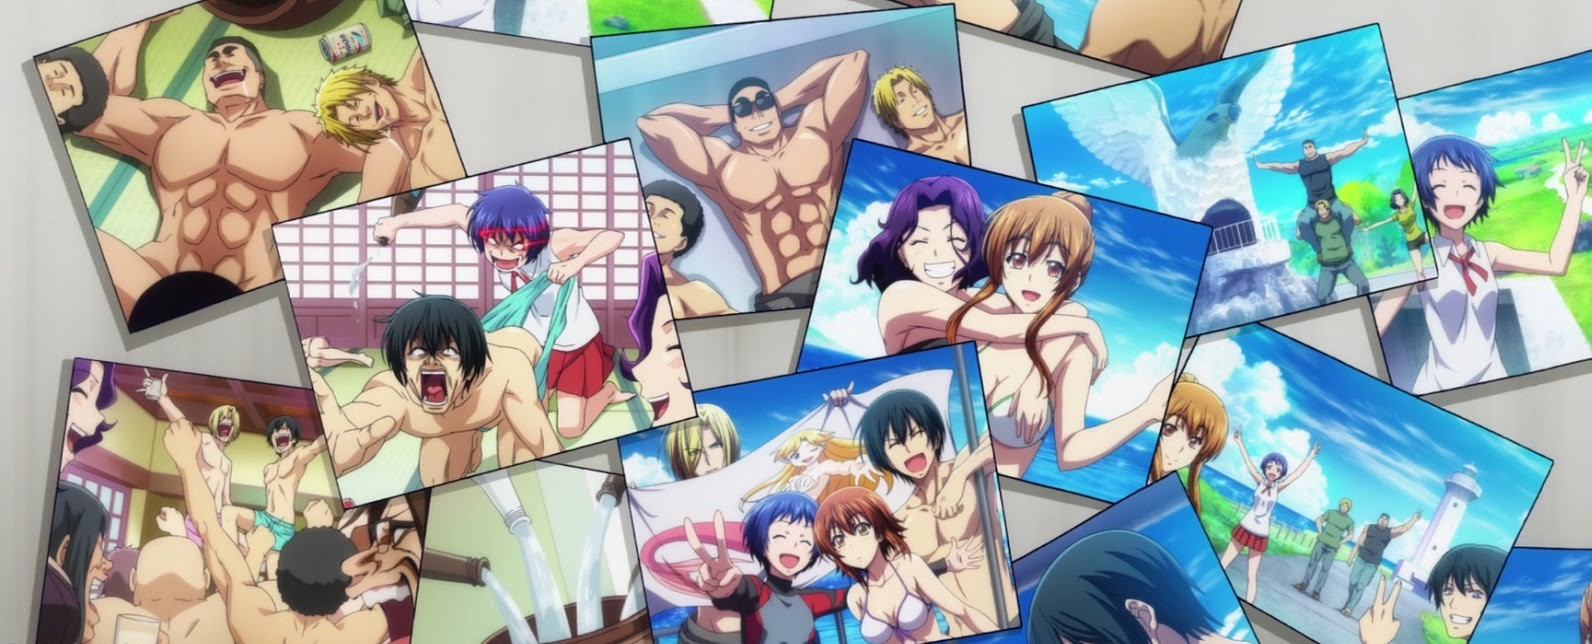 An arrangement of vacation pictures of characters in an episode of the Grand Blue anime.